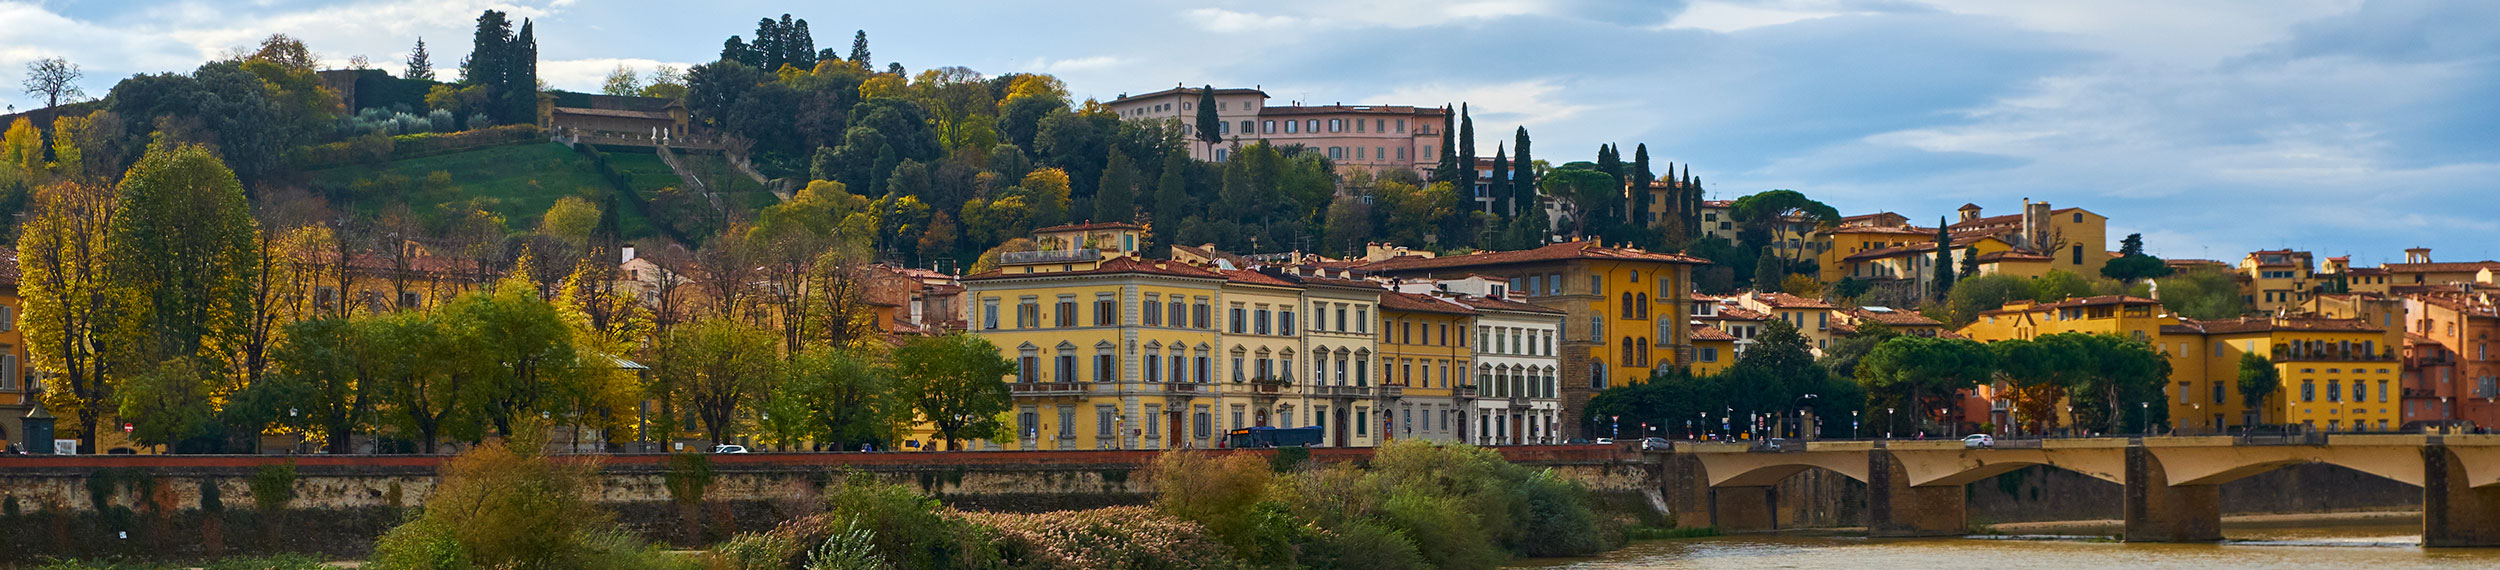 Colorful stucco villas, palazzo, stores and hotels overlooking the Arno River in Florence, Italy.